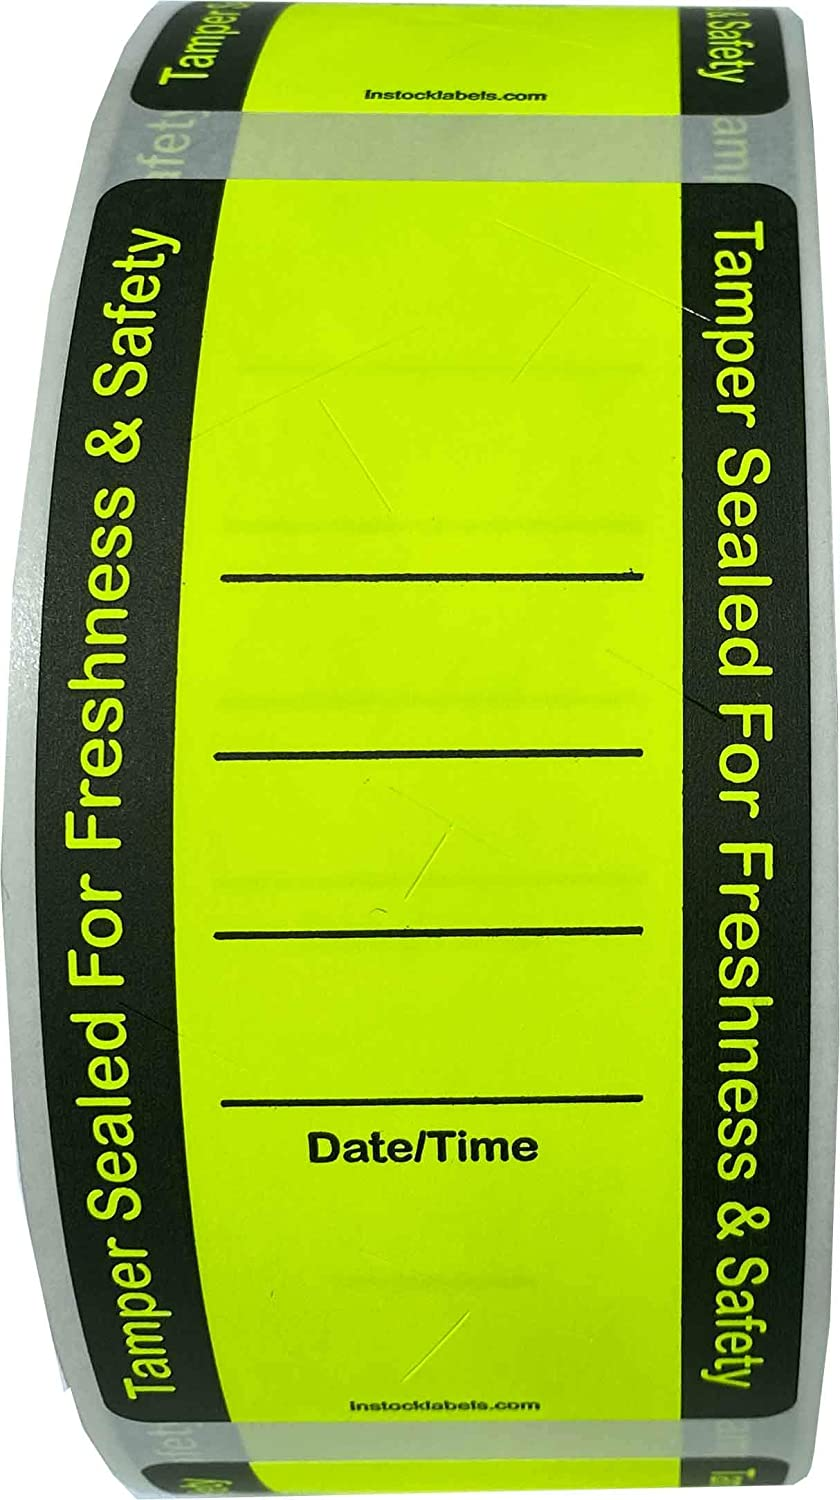 Fluorescent Yellow Food Delivery Tamper Evident Labels 2 x 4 Inch 500 Total Adhesive Stickers